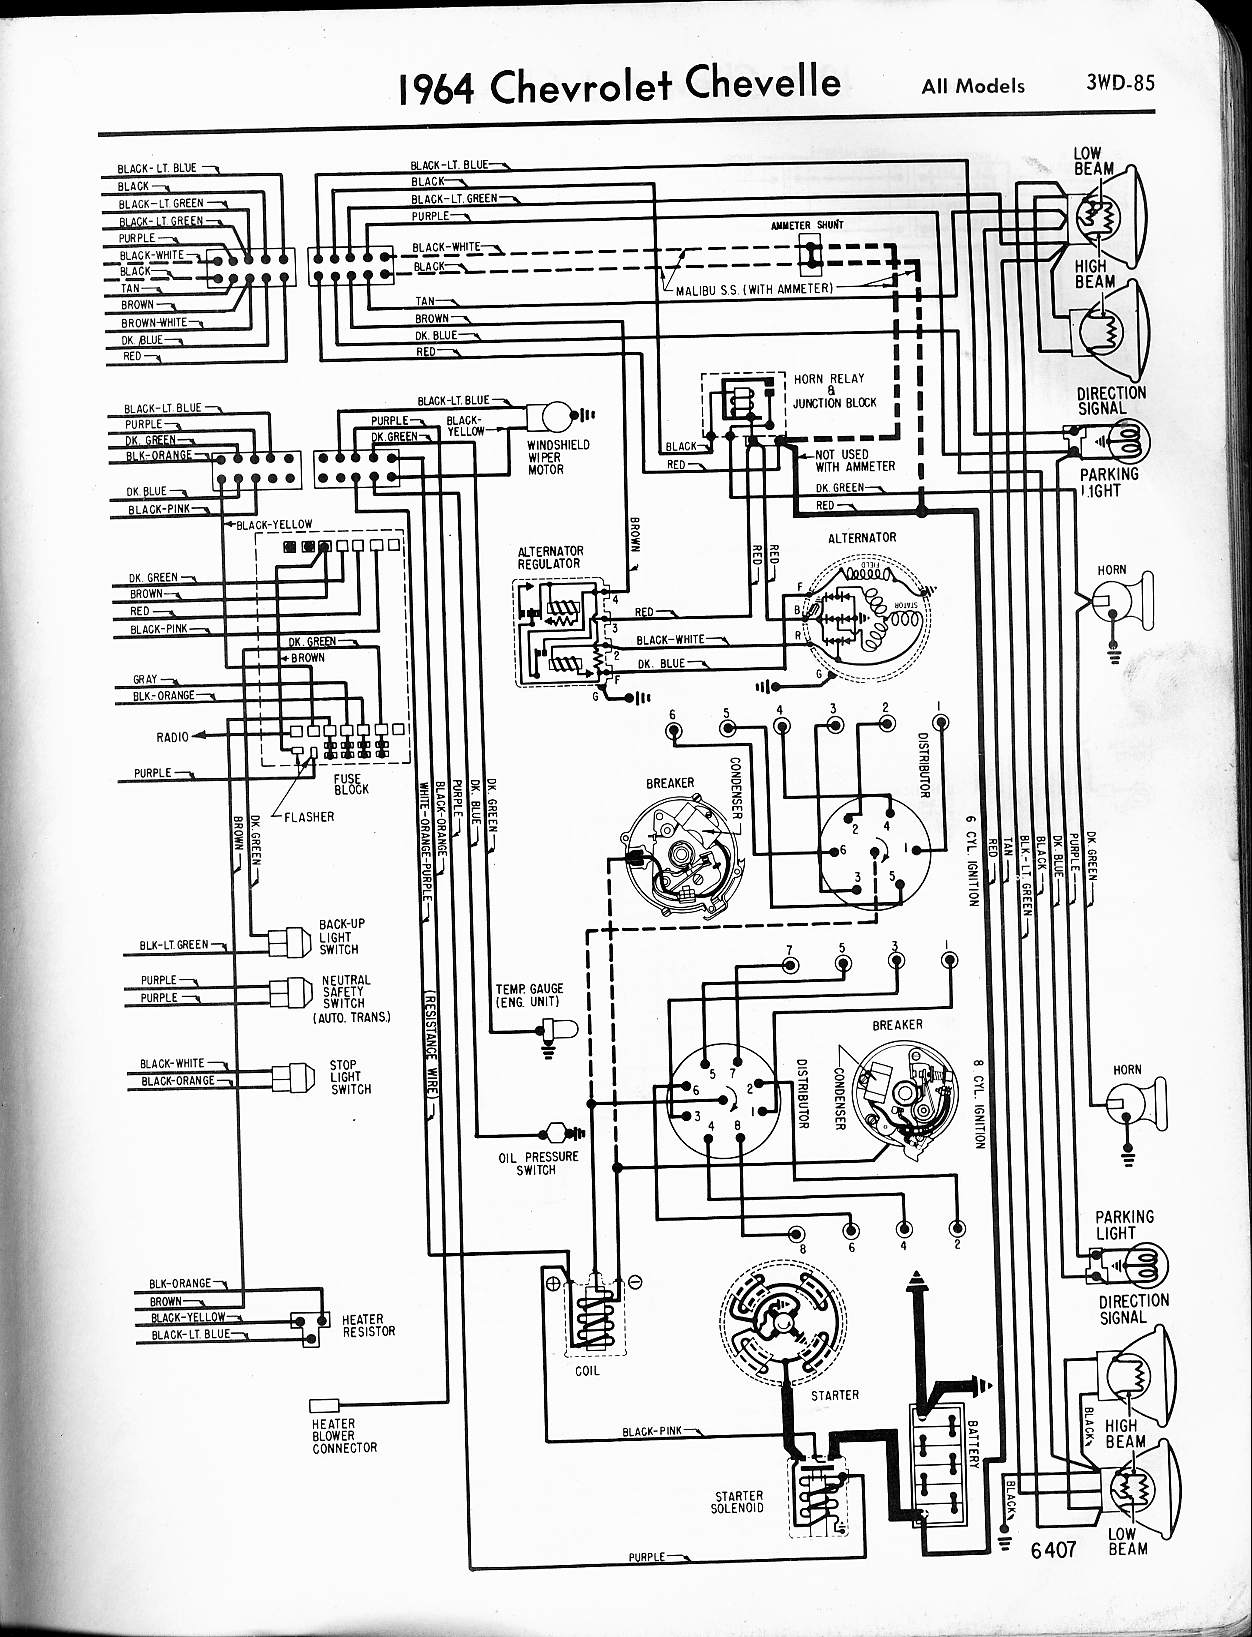 MWireChev64_3WD 085 57 65 chevy wiring diagrams 1964 impala ss wiring diagram at n-0.co